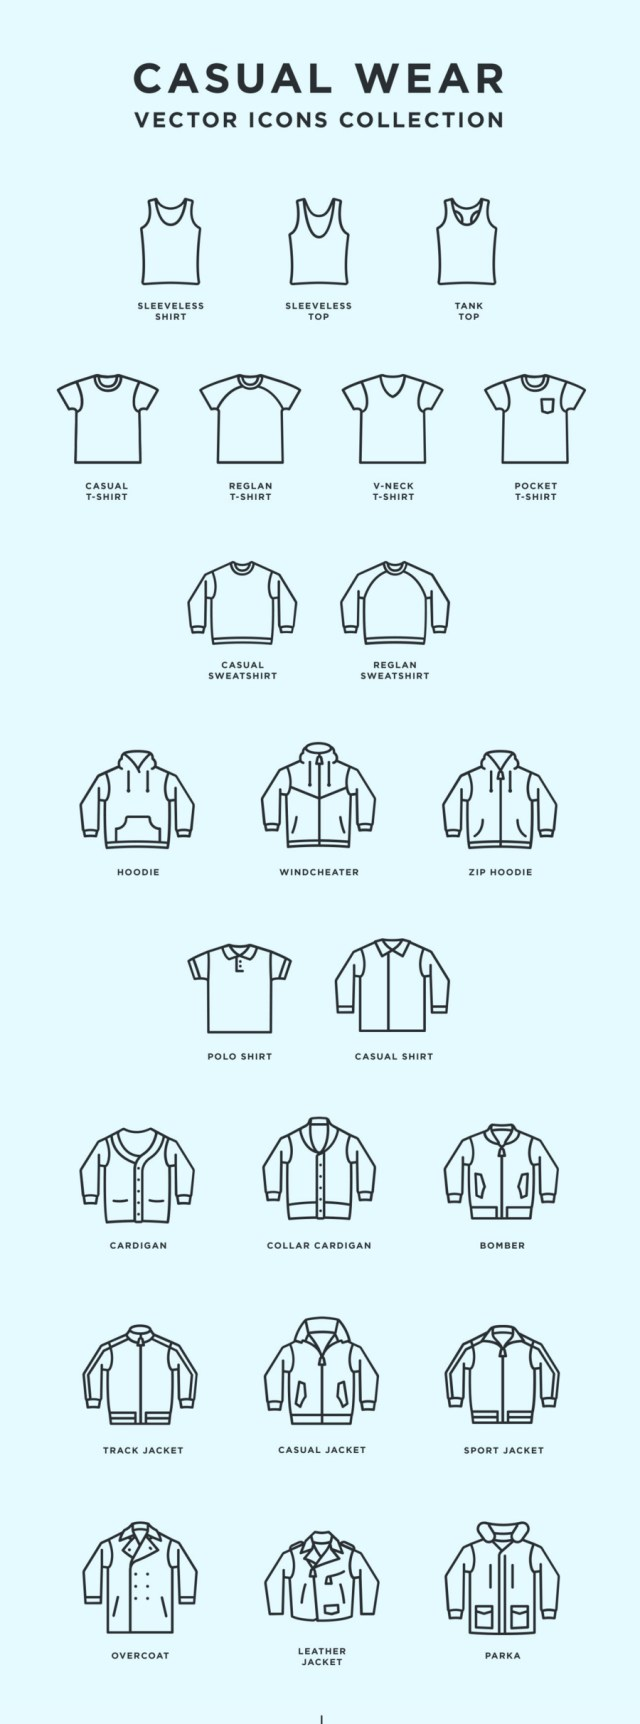 Casual Wear - Free Vector Icons Collection